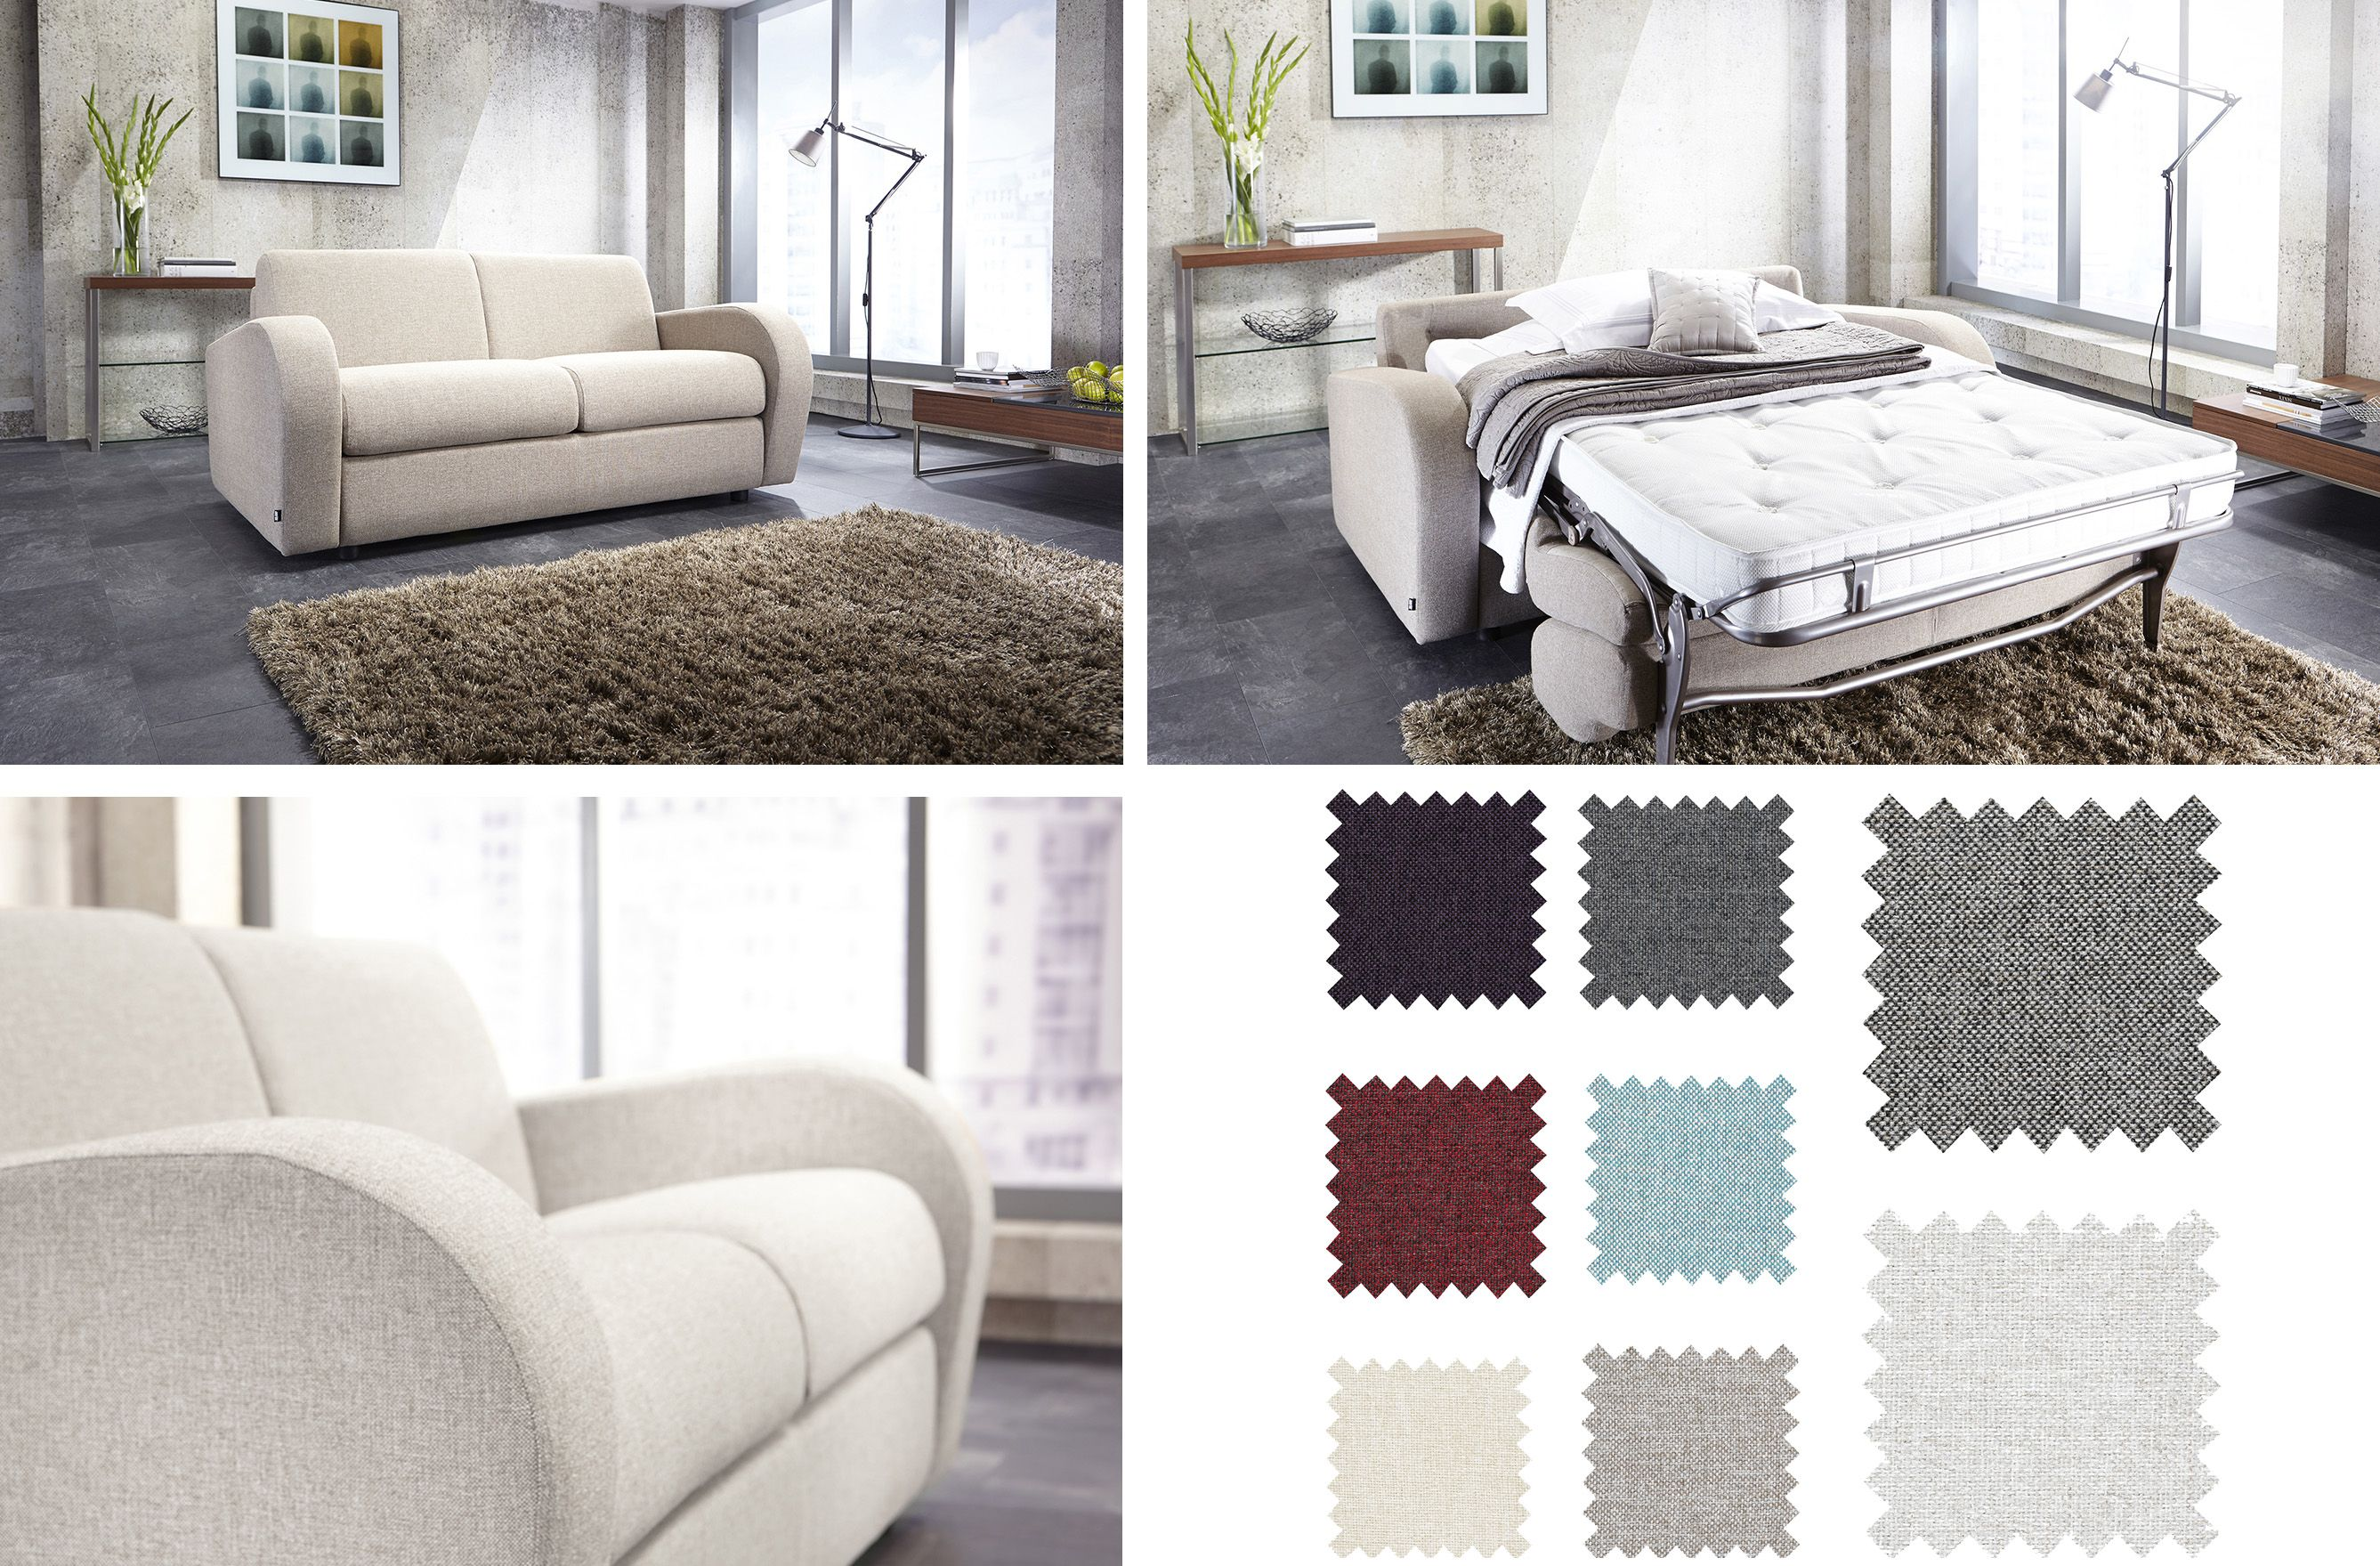 Retro White Sofa Bed With Luxury Reflex Foam Seat Made In Uk Luxury Sofa Bed White Sofa Bed Folding Guest Bed